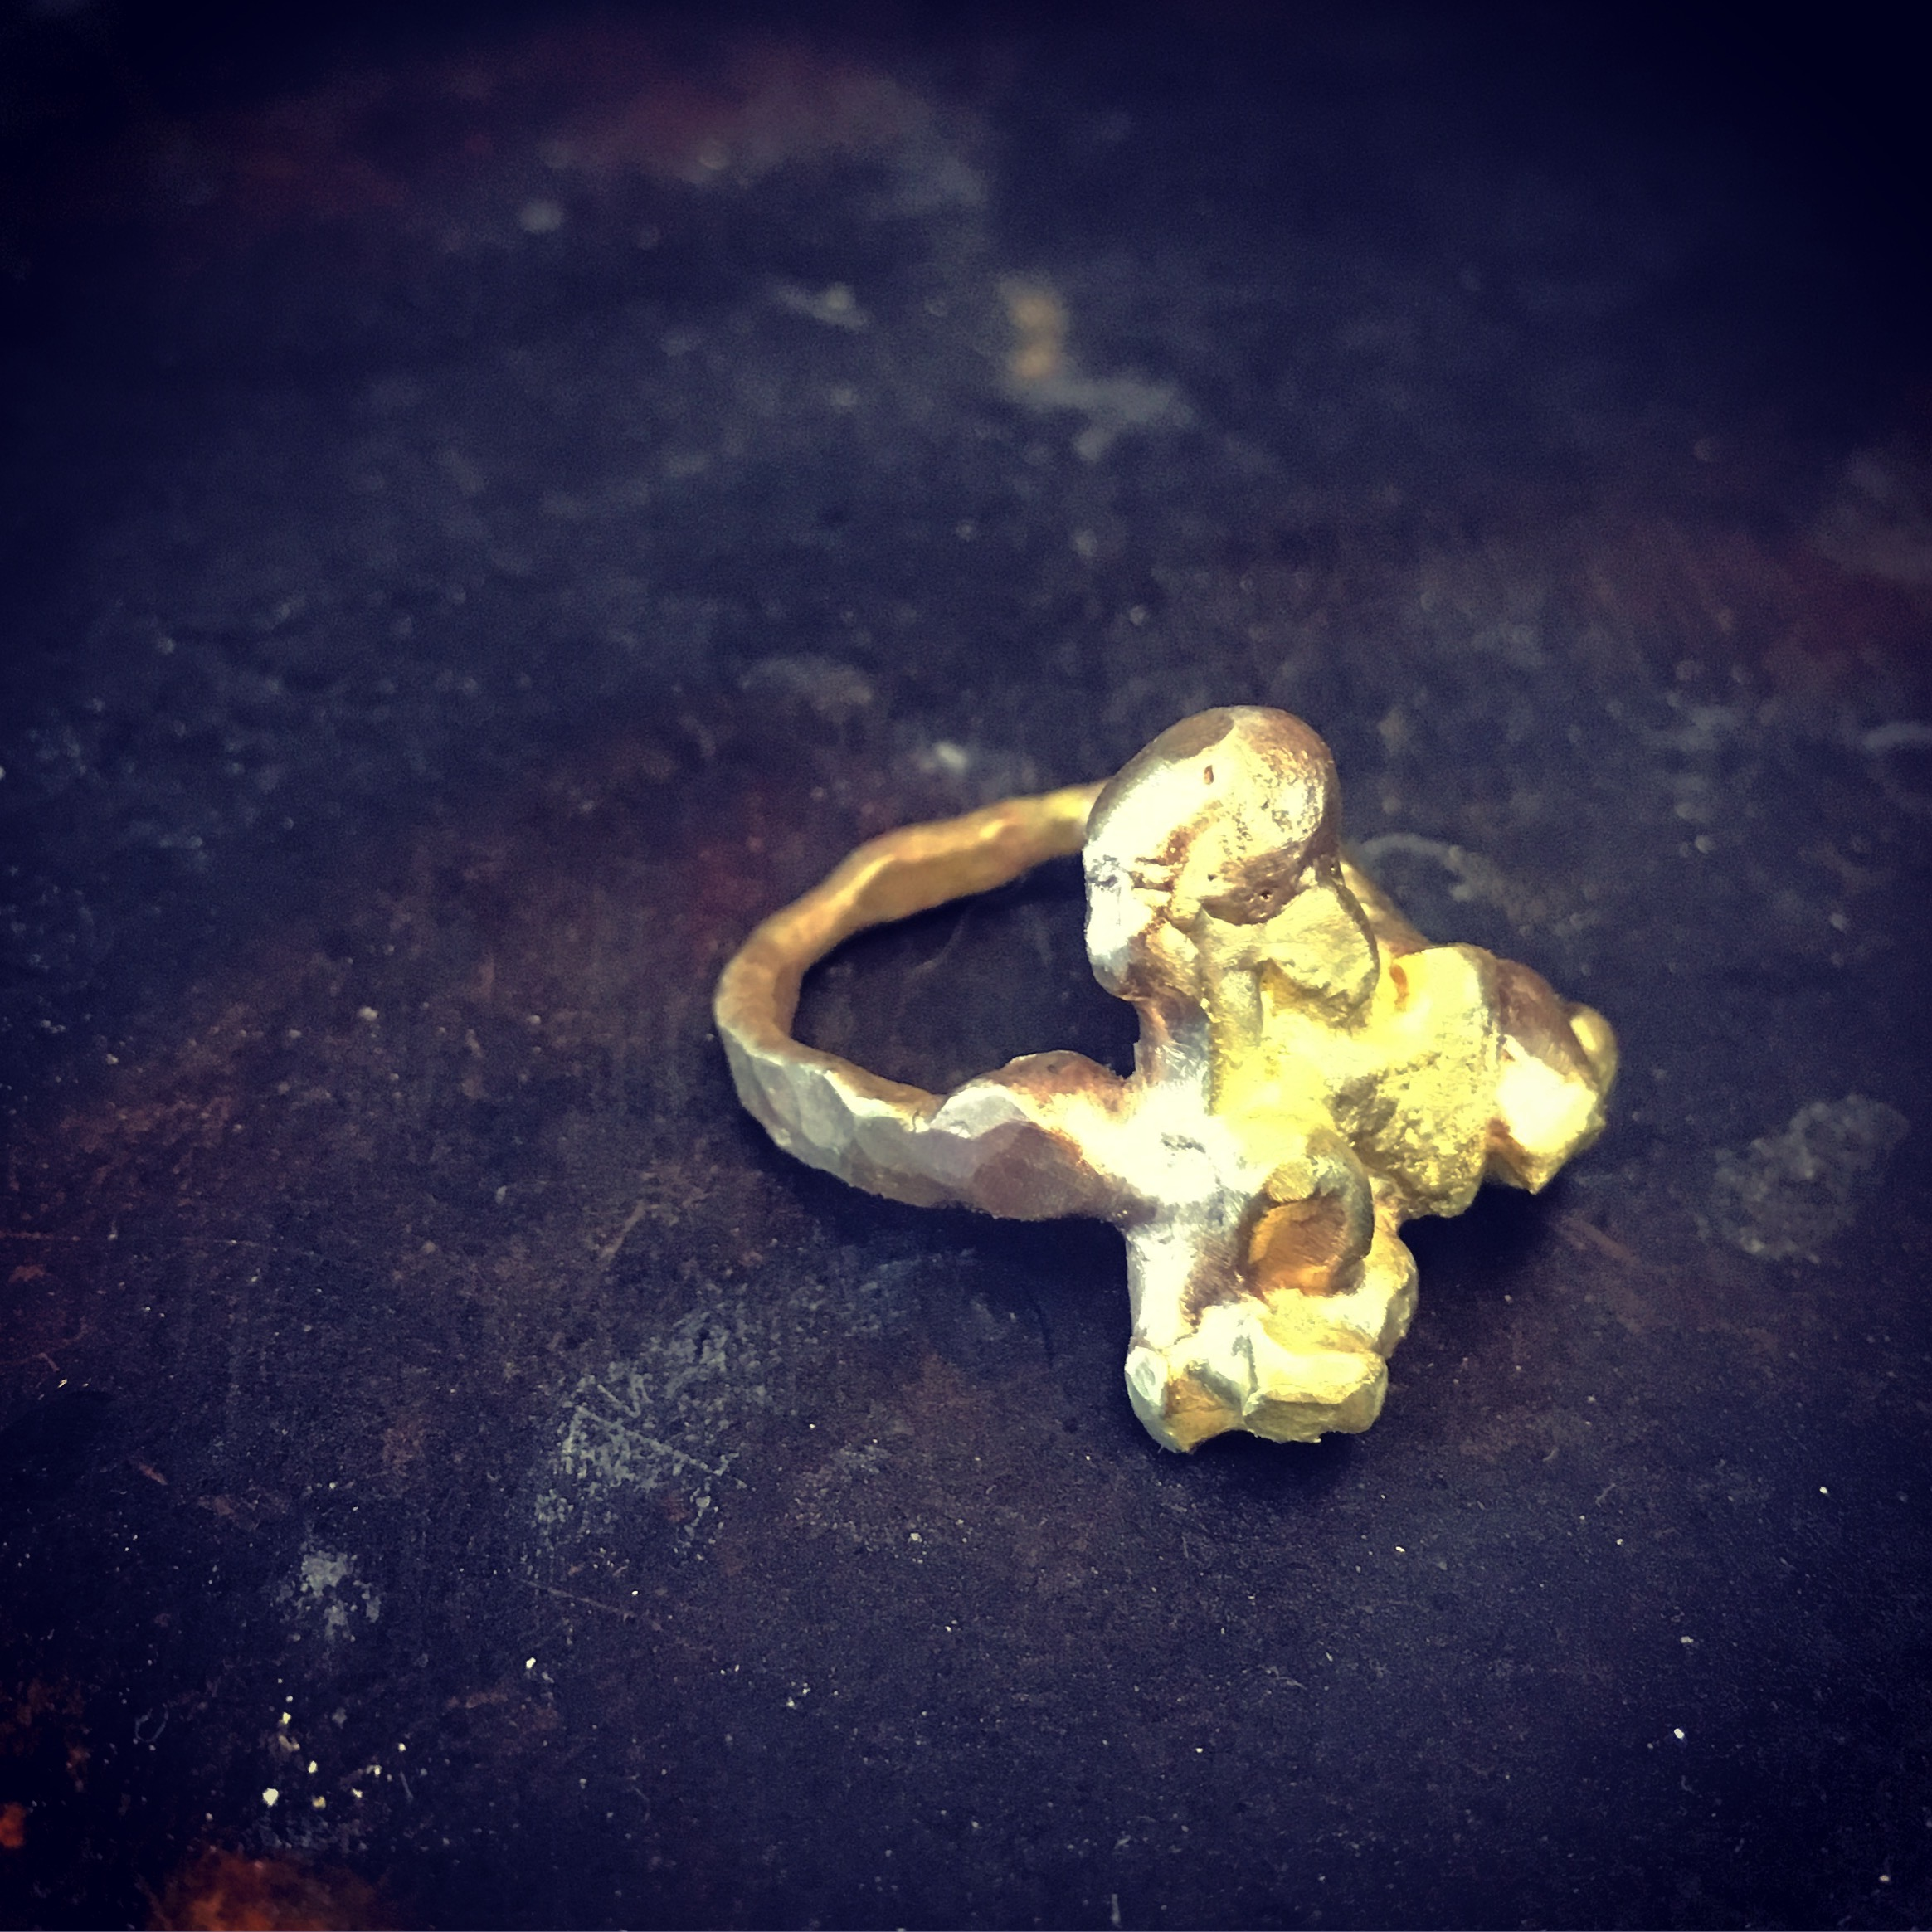 Gold from all three rings was forged into this raw ring.